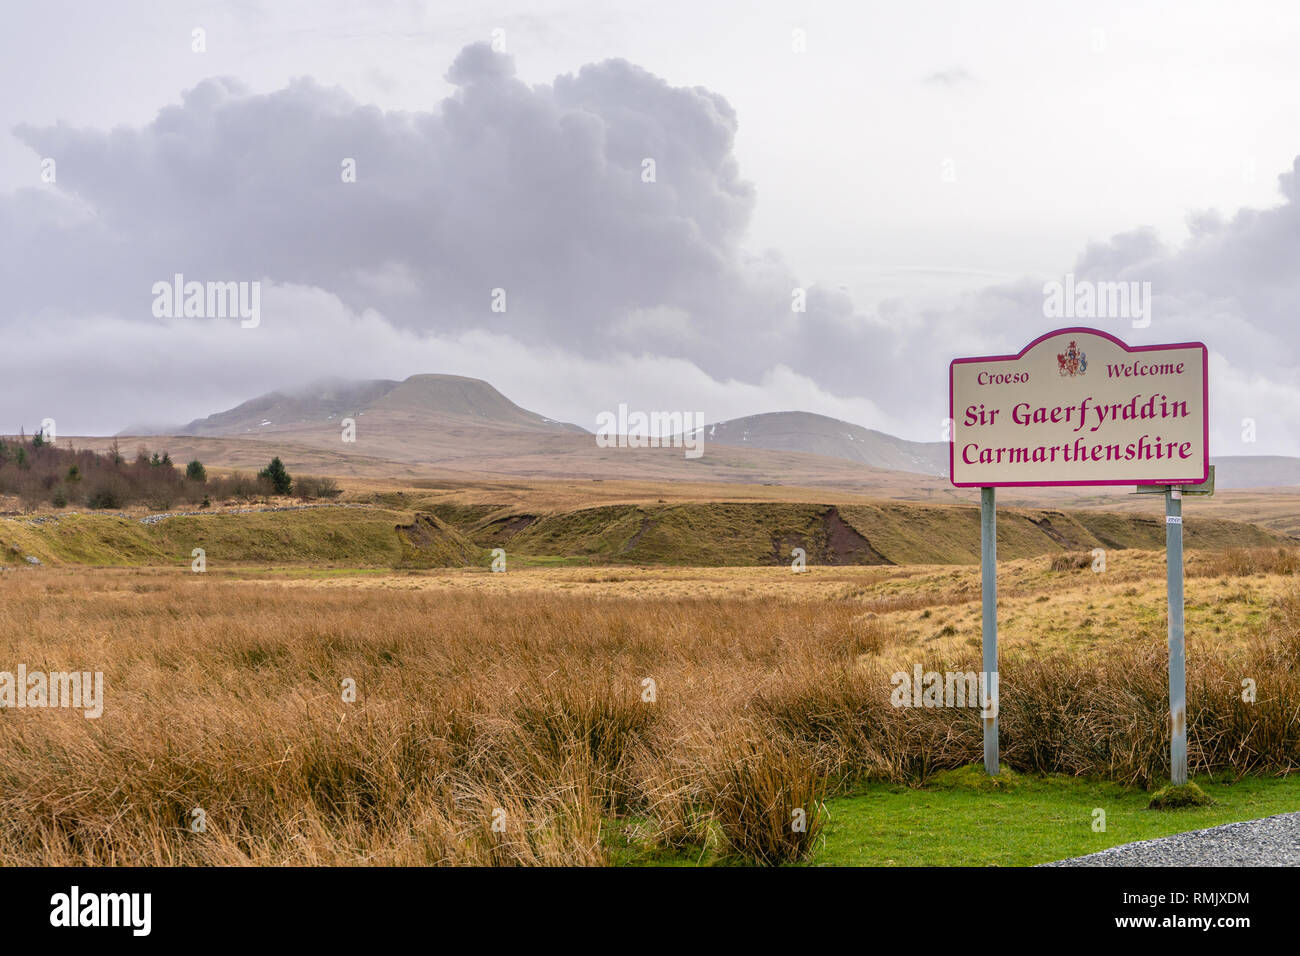 'Welcome to Carmathenshire' sign with cumulonimbus clouds over the Black Mountain range (Carmarthen Fans) in the Brecon Beacons, Wales, UK - Stock Image